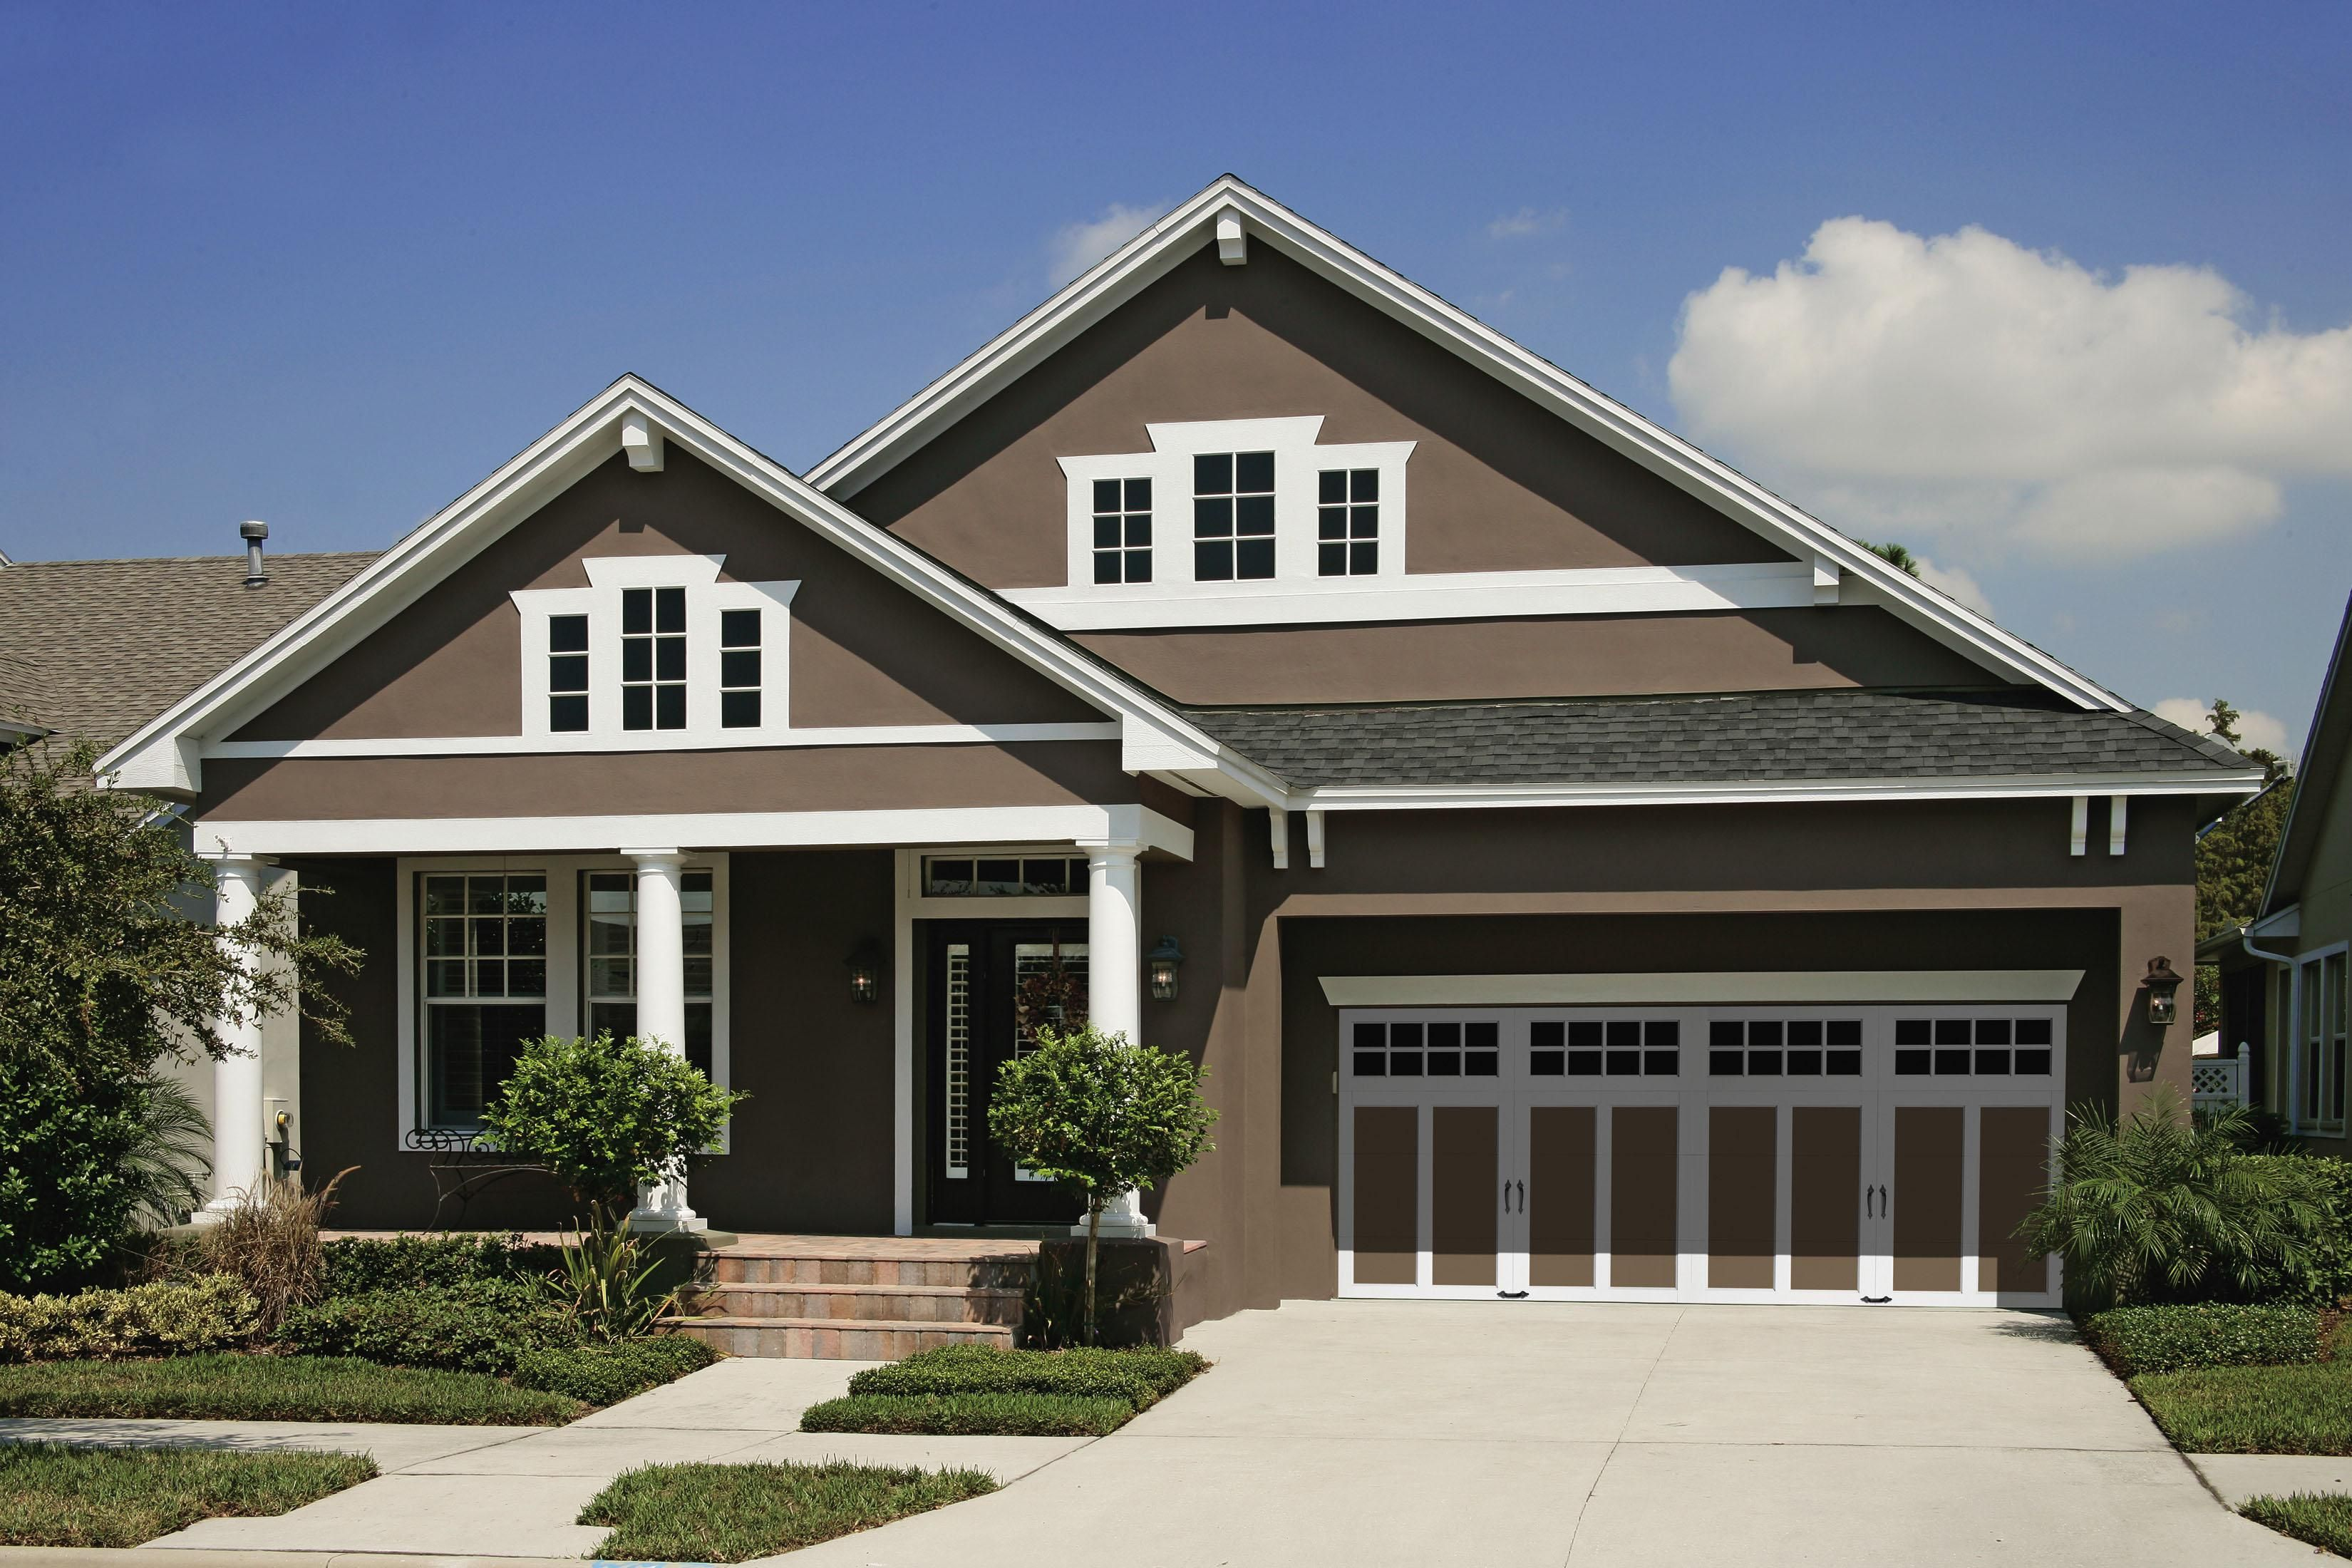 Exterior Captivating Exterior House Paint Colors Designed By Mocha Wall And White Gla House Exterior Color Schemes House Paint Exterior Craftsman Home Exterior